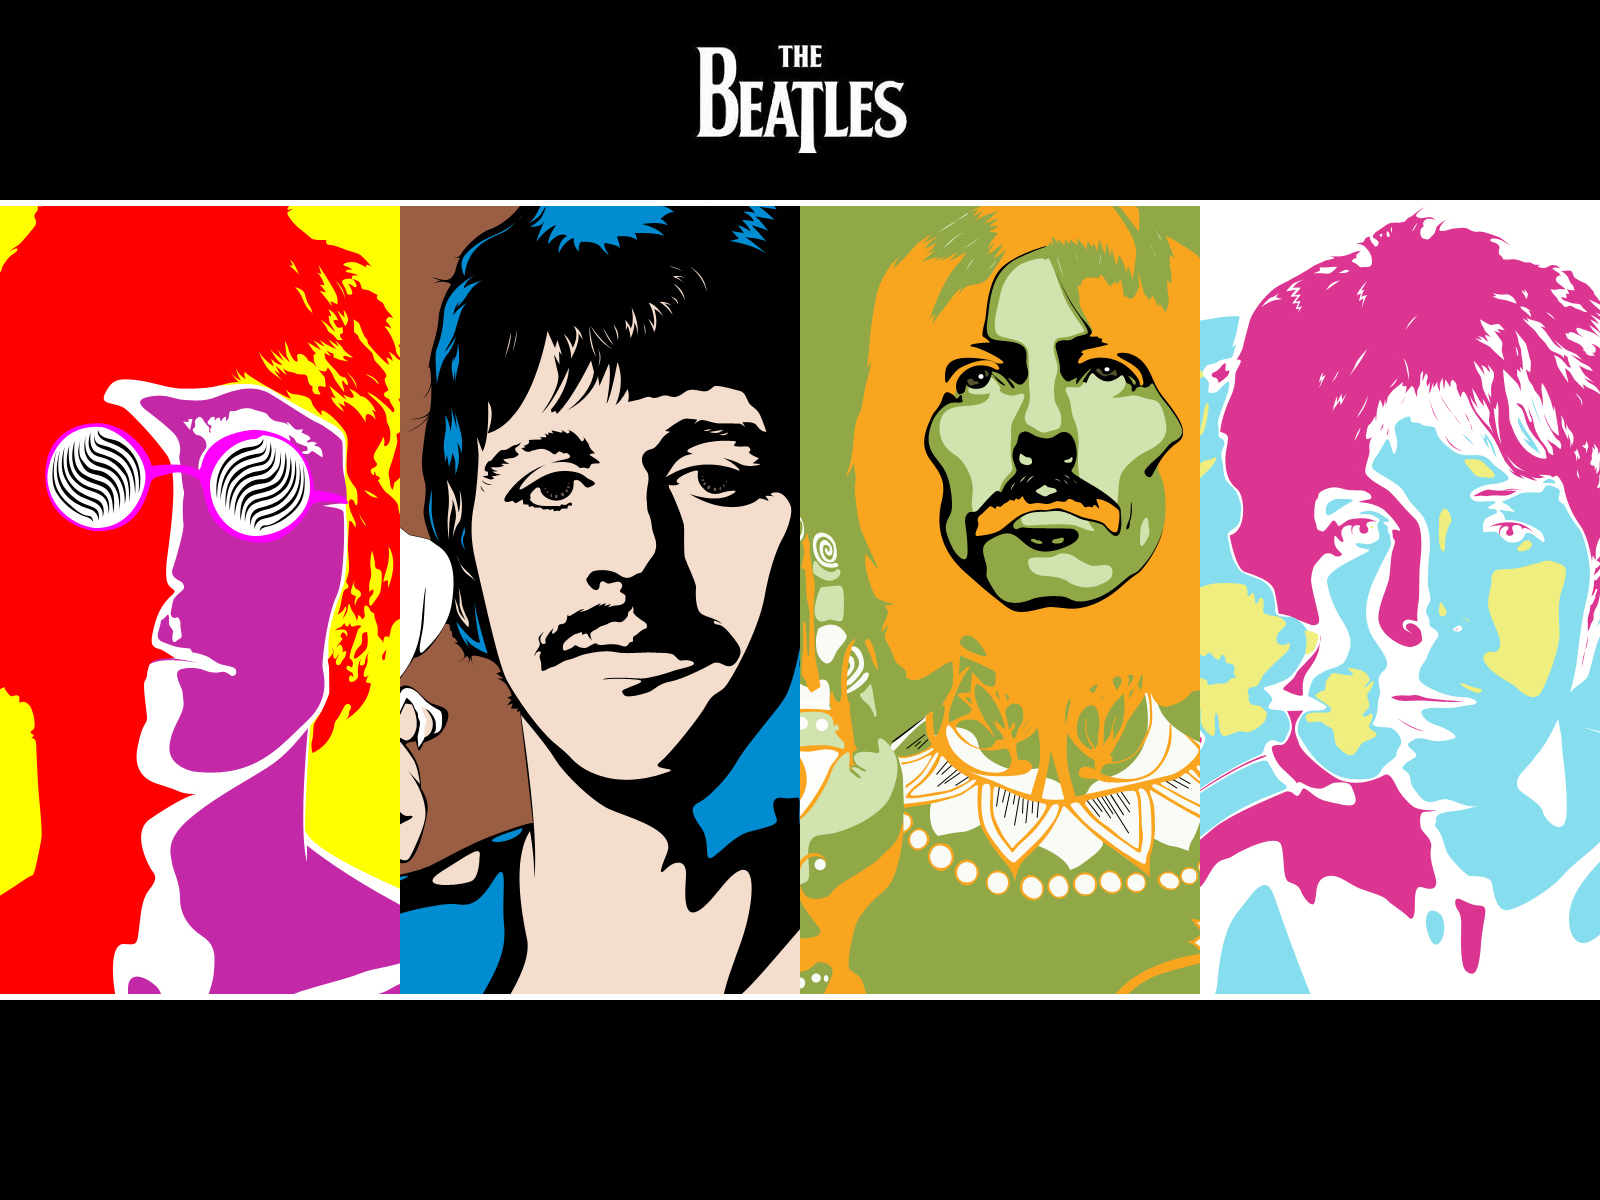 http://1.bp.blogspot.com/-ZhkDSLe9BqI/Td0J37uvCvI/AAAAAAAACP4/ajWTZ_hvBX0/s1600/The+Beatles+Wallpapers%252C+The+Beatles+Wallpaper.jpeg